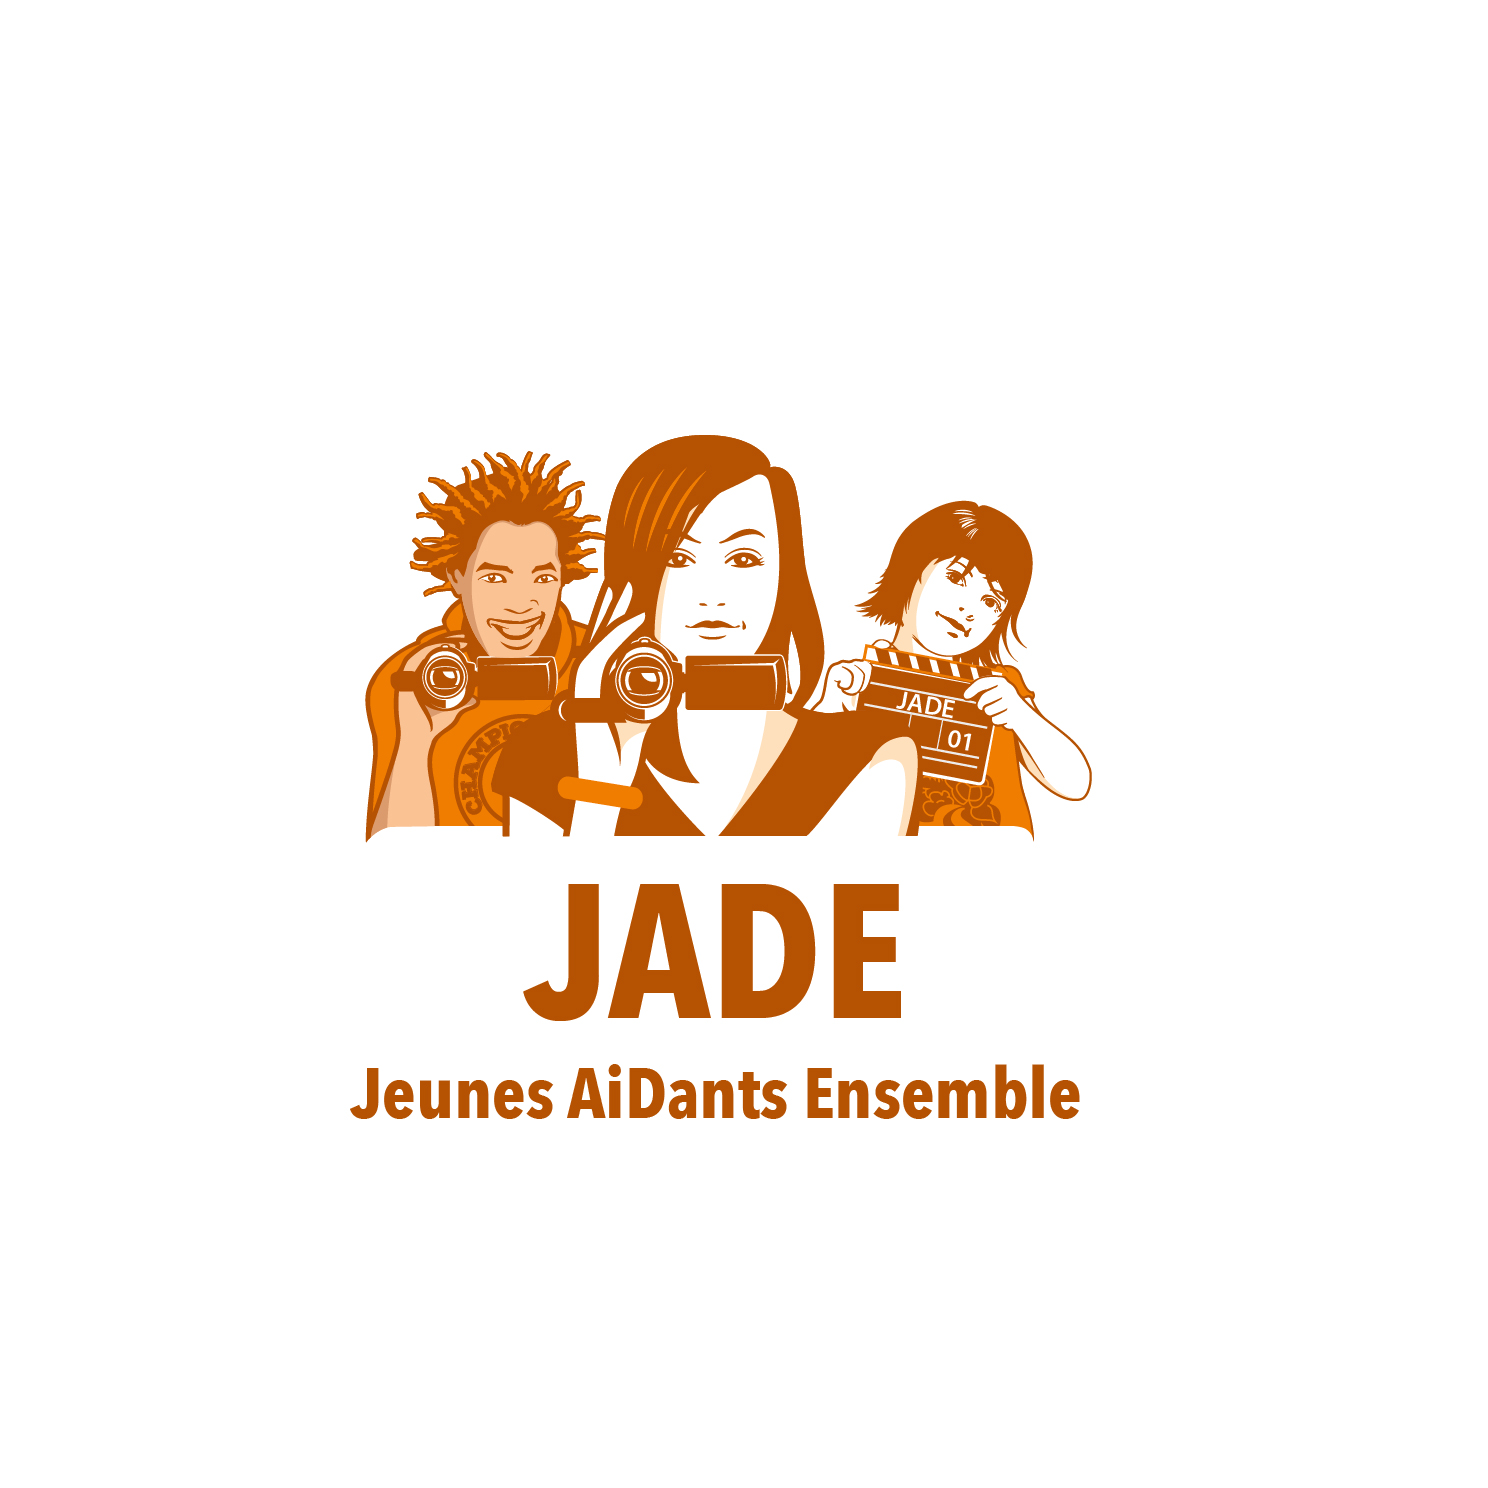 ASSOCIATION NATIONALE JEUNES AIDANTS ENSEMBLE JADE